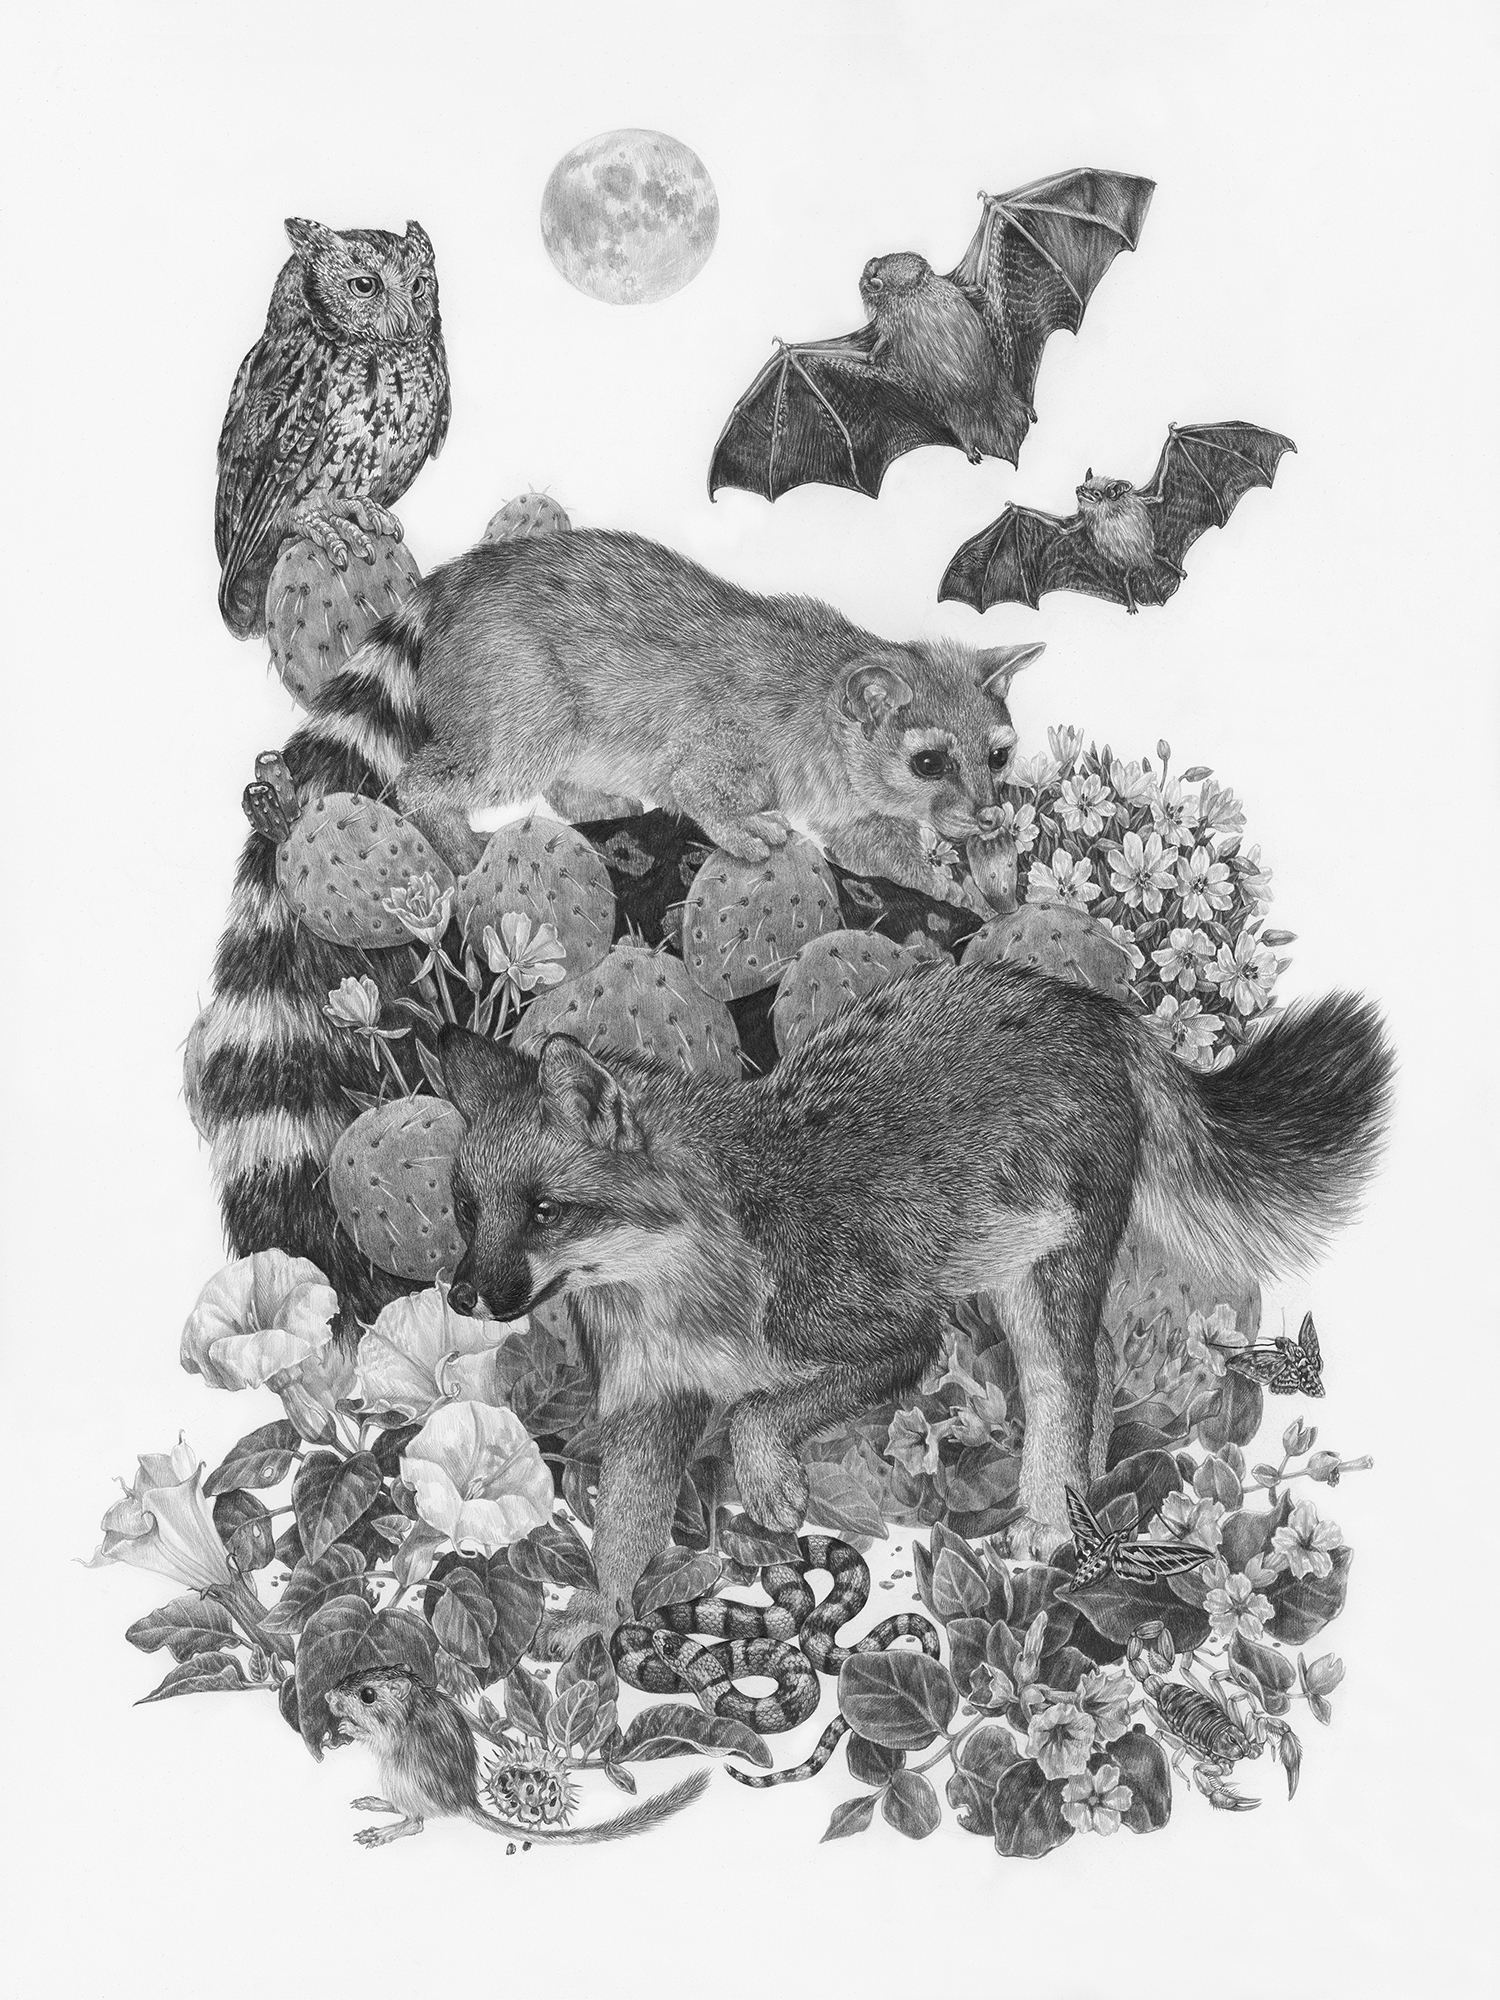 "Zion at Night, 18"" x 24"", Graphite on paper, 2019   Click here to purchase through Antler Gallery   SPECIES DEPICTED  Species most commonly spotted after dark: Ringtail Cat, Gray Fox, Western Screech Owl, Merriam's Kangaroo Rat, Western Red Bat (larger bat), Western Pipistrelle (smaller bat), Giant Desert Hairy Scorpion, Five Spotted Hawkmoth, White-lined Sphinx Moth, Sonoran Mountain Kingsnake, wildflowers, clockwise from top right: Tufted EveningPrimrose, Four O'clock, Sacred Datura, Bridge's Evening Primrose, cactus species was observed and photographed but not definitively identified"